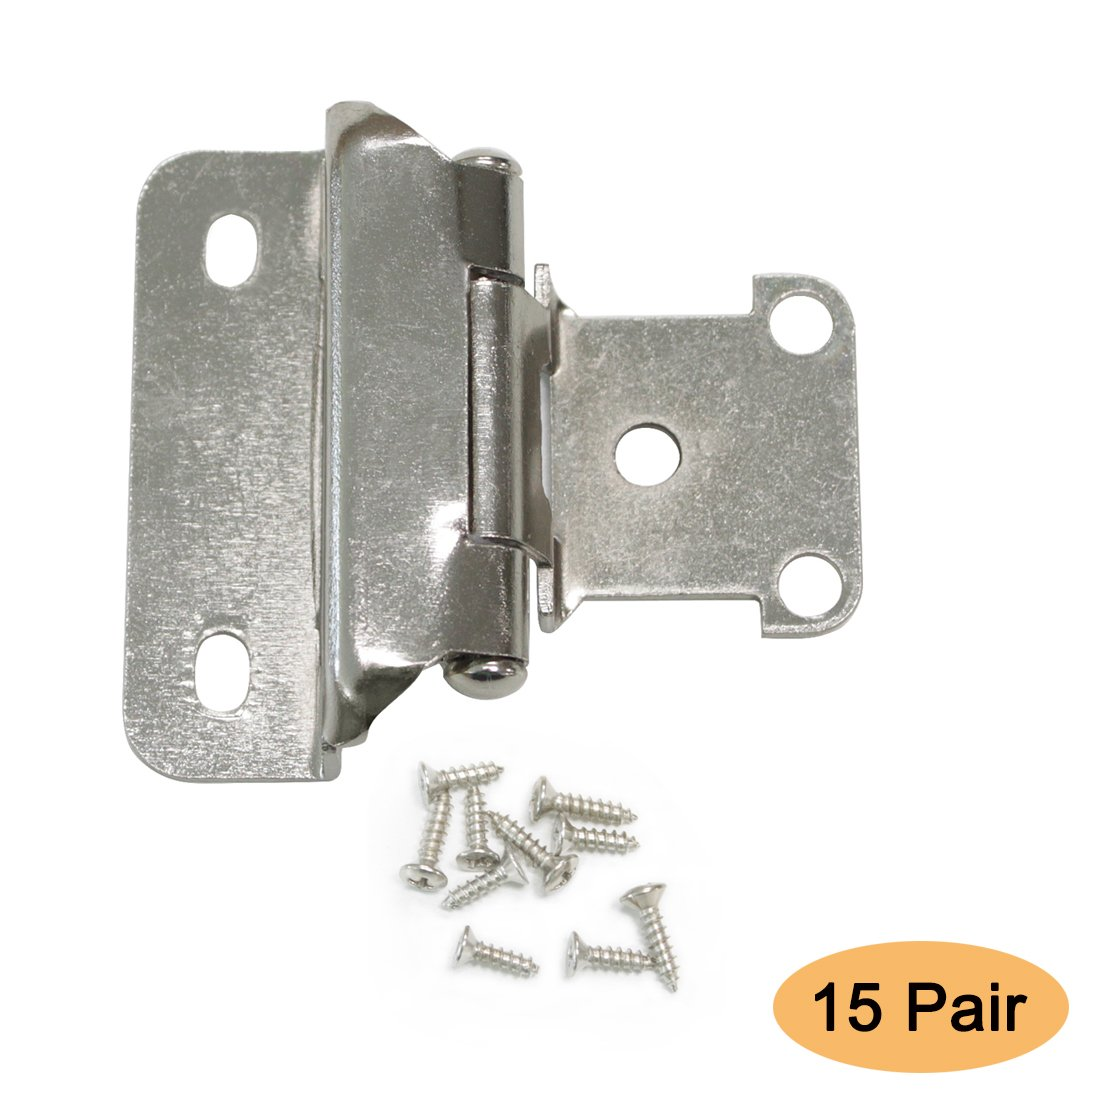 Gobrico 1/2'' Overlay Self Closing Cabinet Hinges Kitchen Hinges in Brushed Satin Nickel 15Pair(30Pcs)